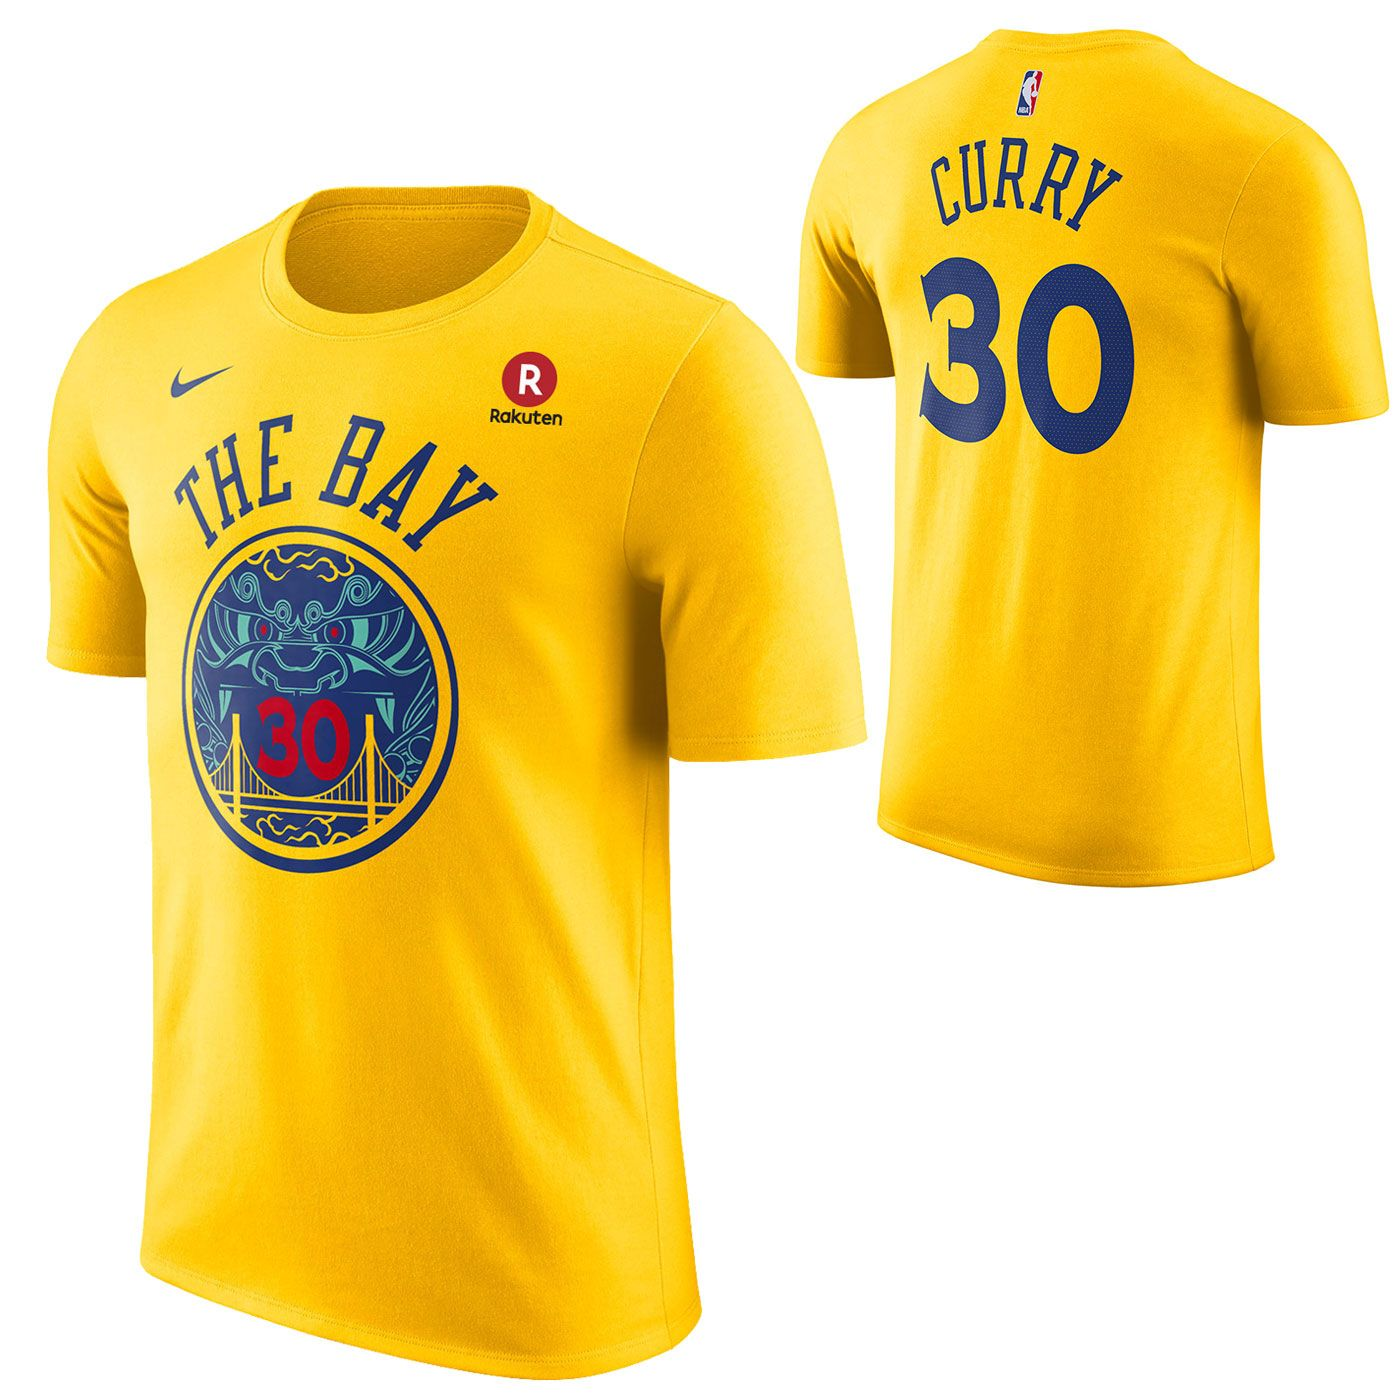 Golden State Warriors Nike Dri-FIT Men s City Edition Stephen Curry  30  Chinese Heritage Game Time Name   Number Tee - Gold fdfbfdb4c